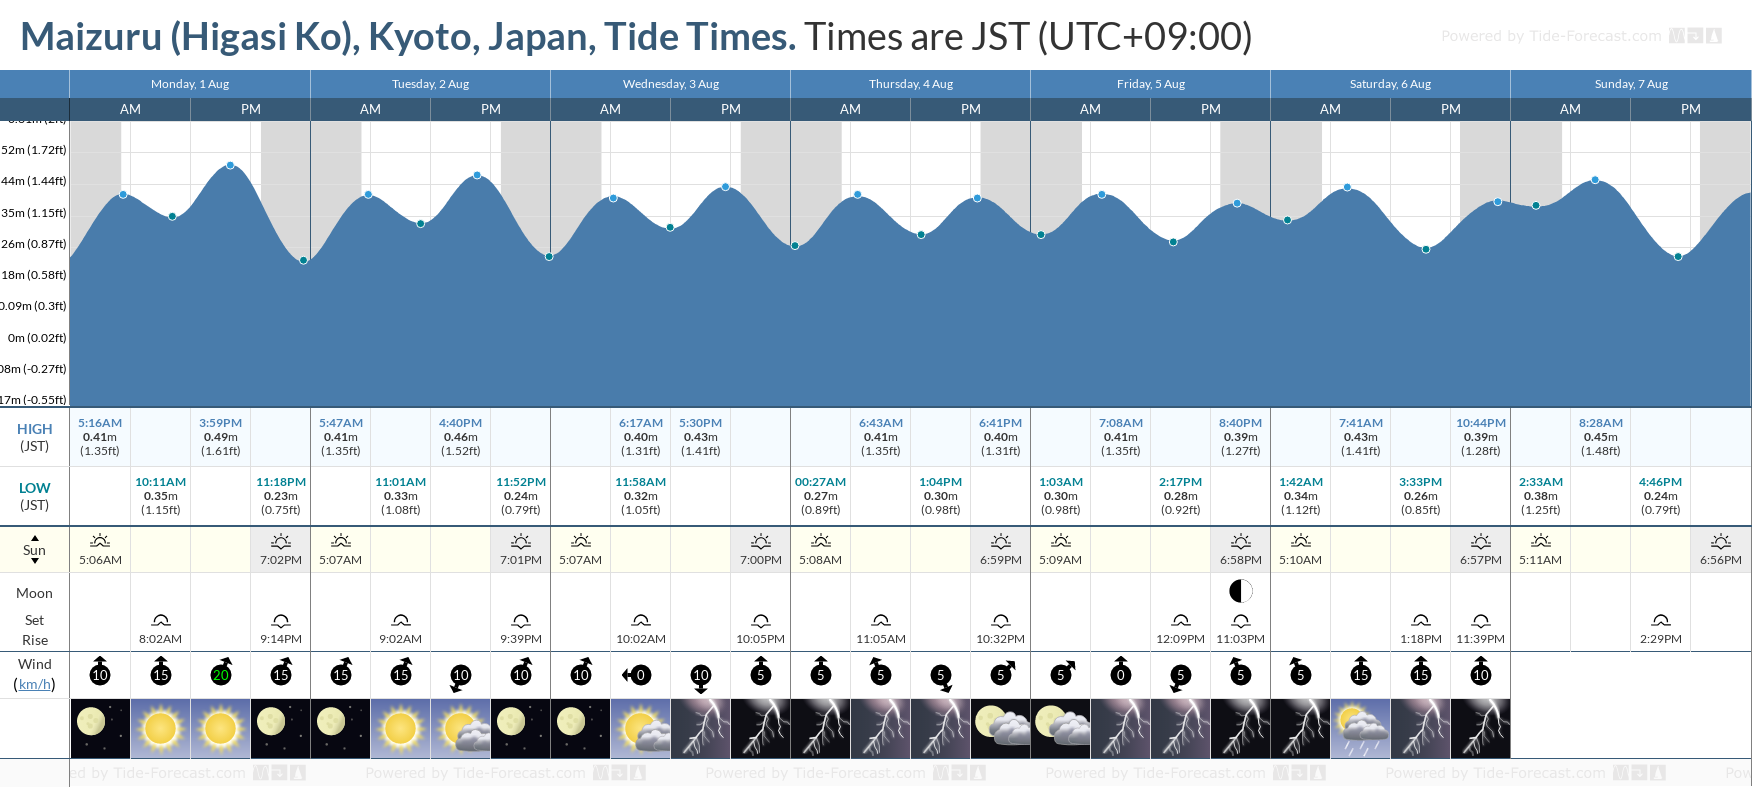 Maizuru (Higasi Ko), Kyoto, Japan Tide Chart including high and low tide tide times for the next 7 days